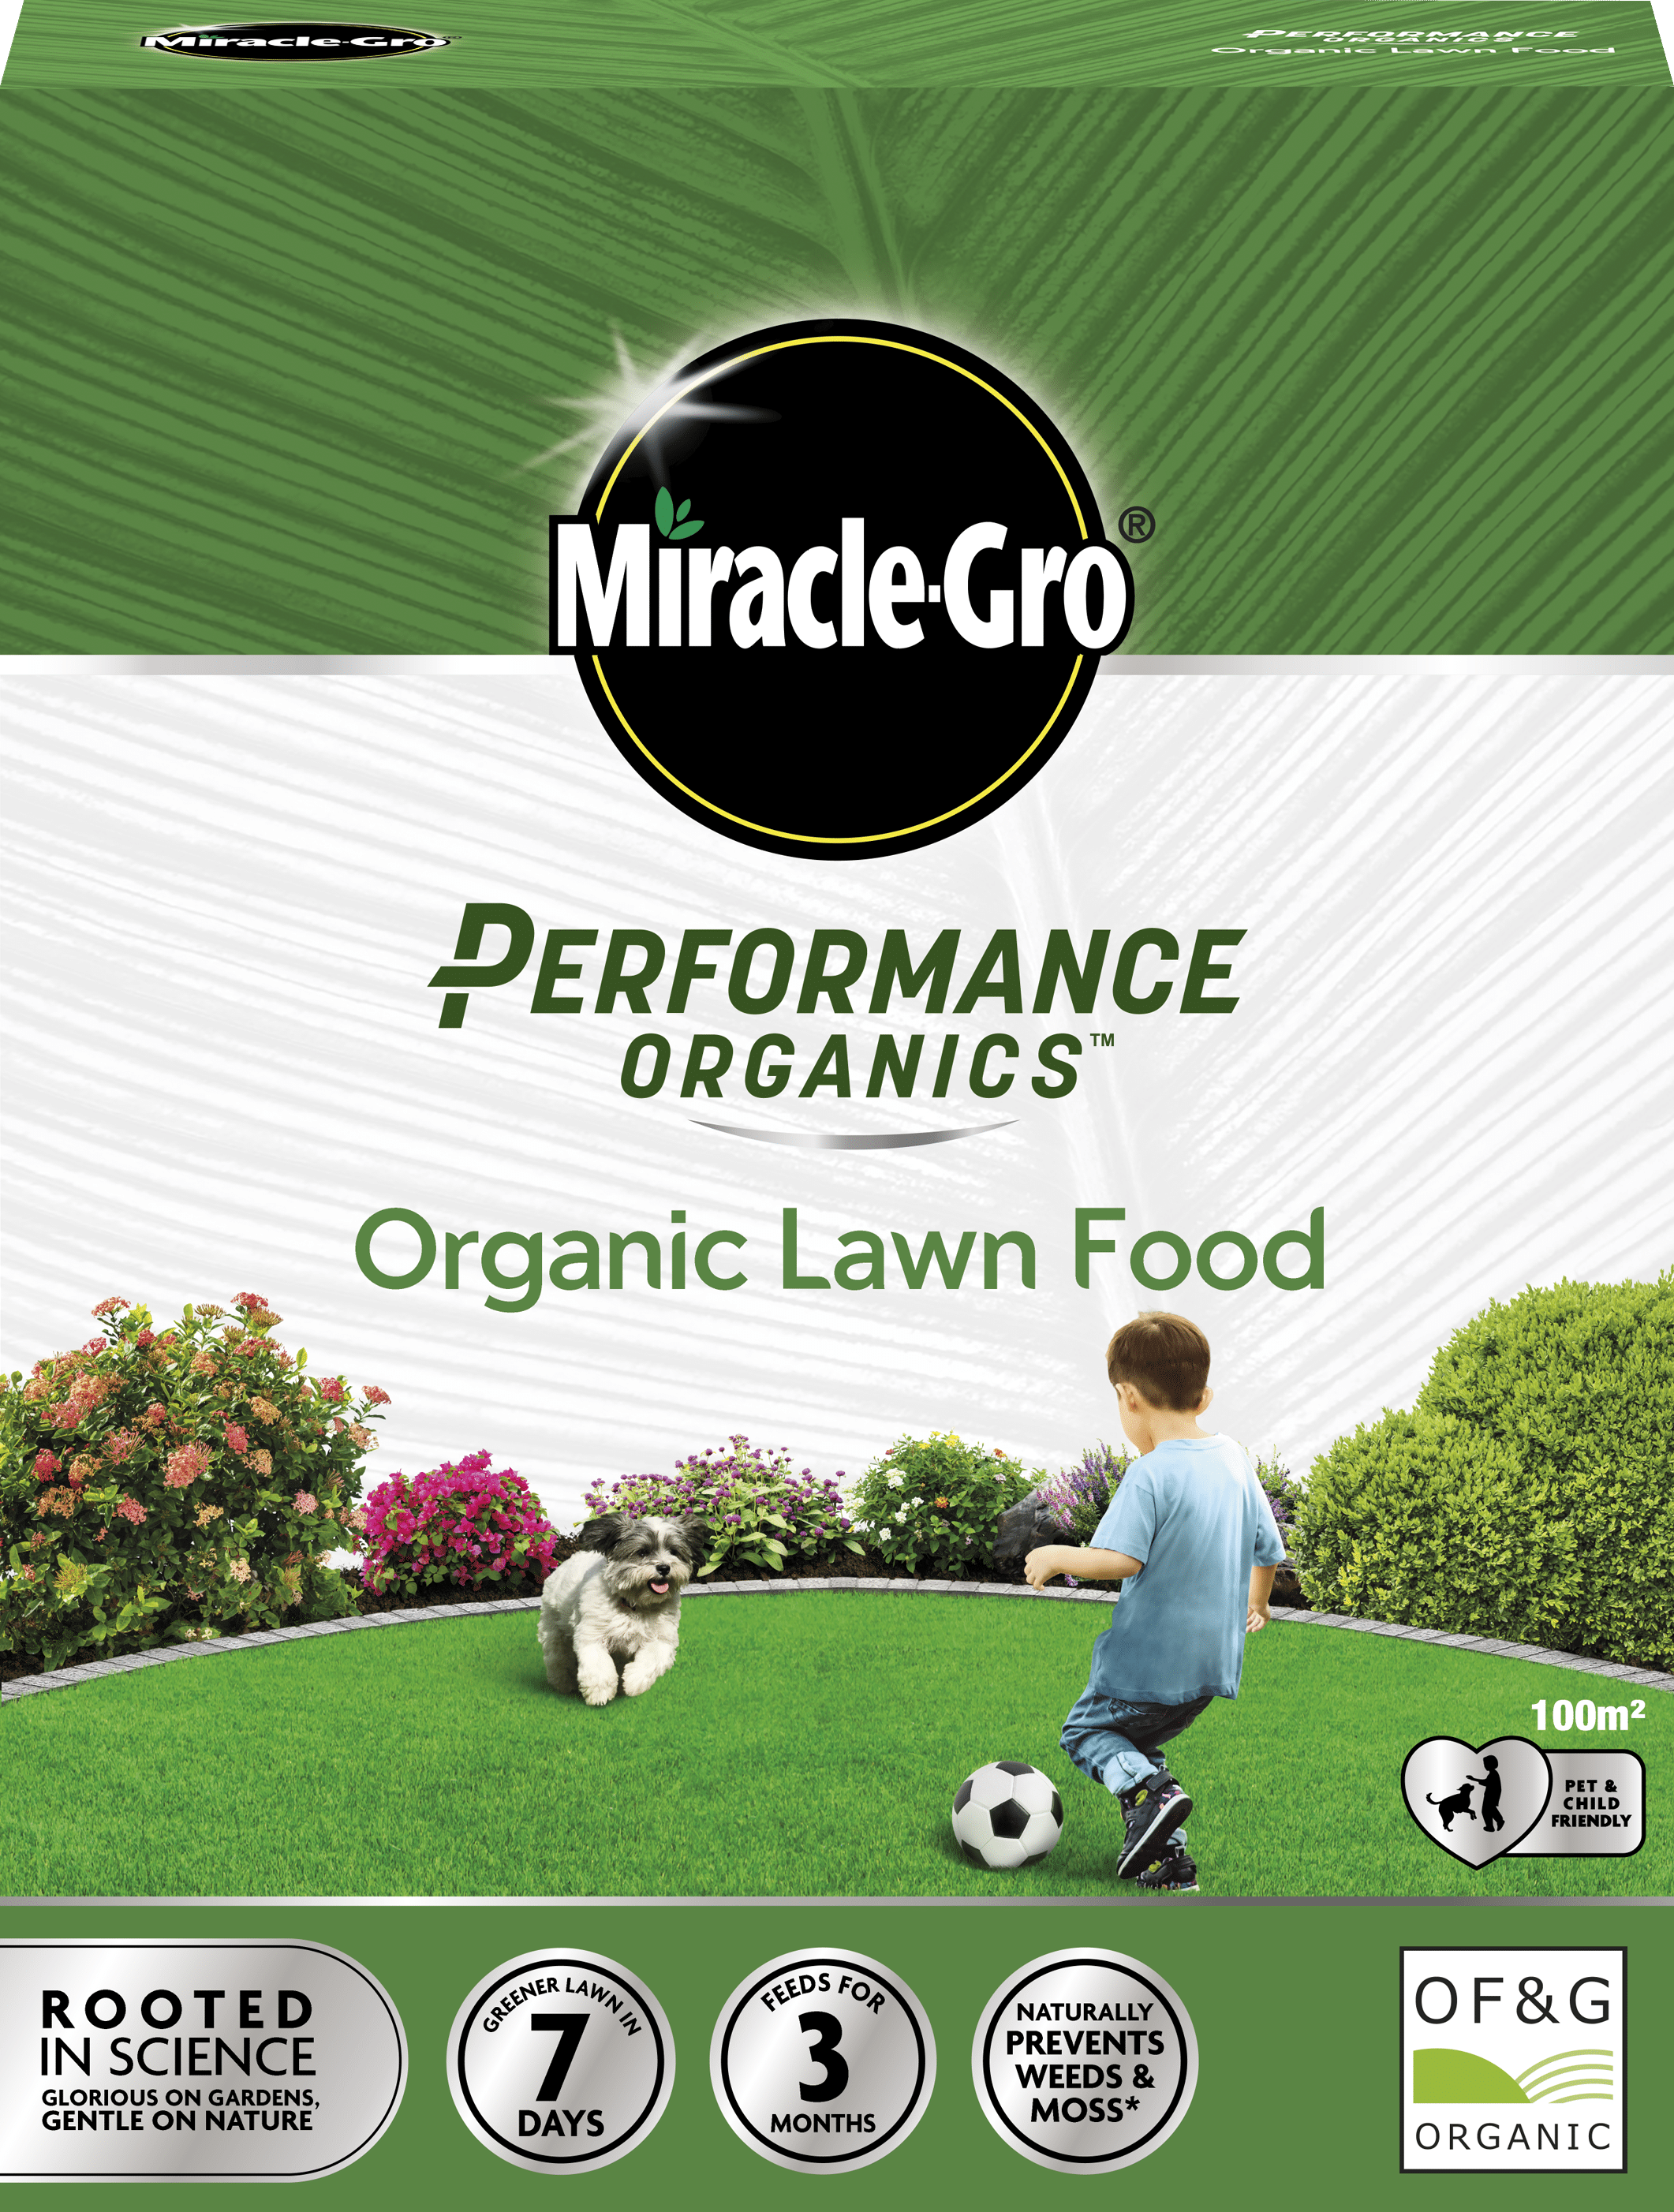 Miracle-Gro Performance Organics Lawn Food 100m 119915_119930 C